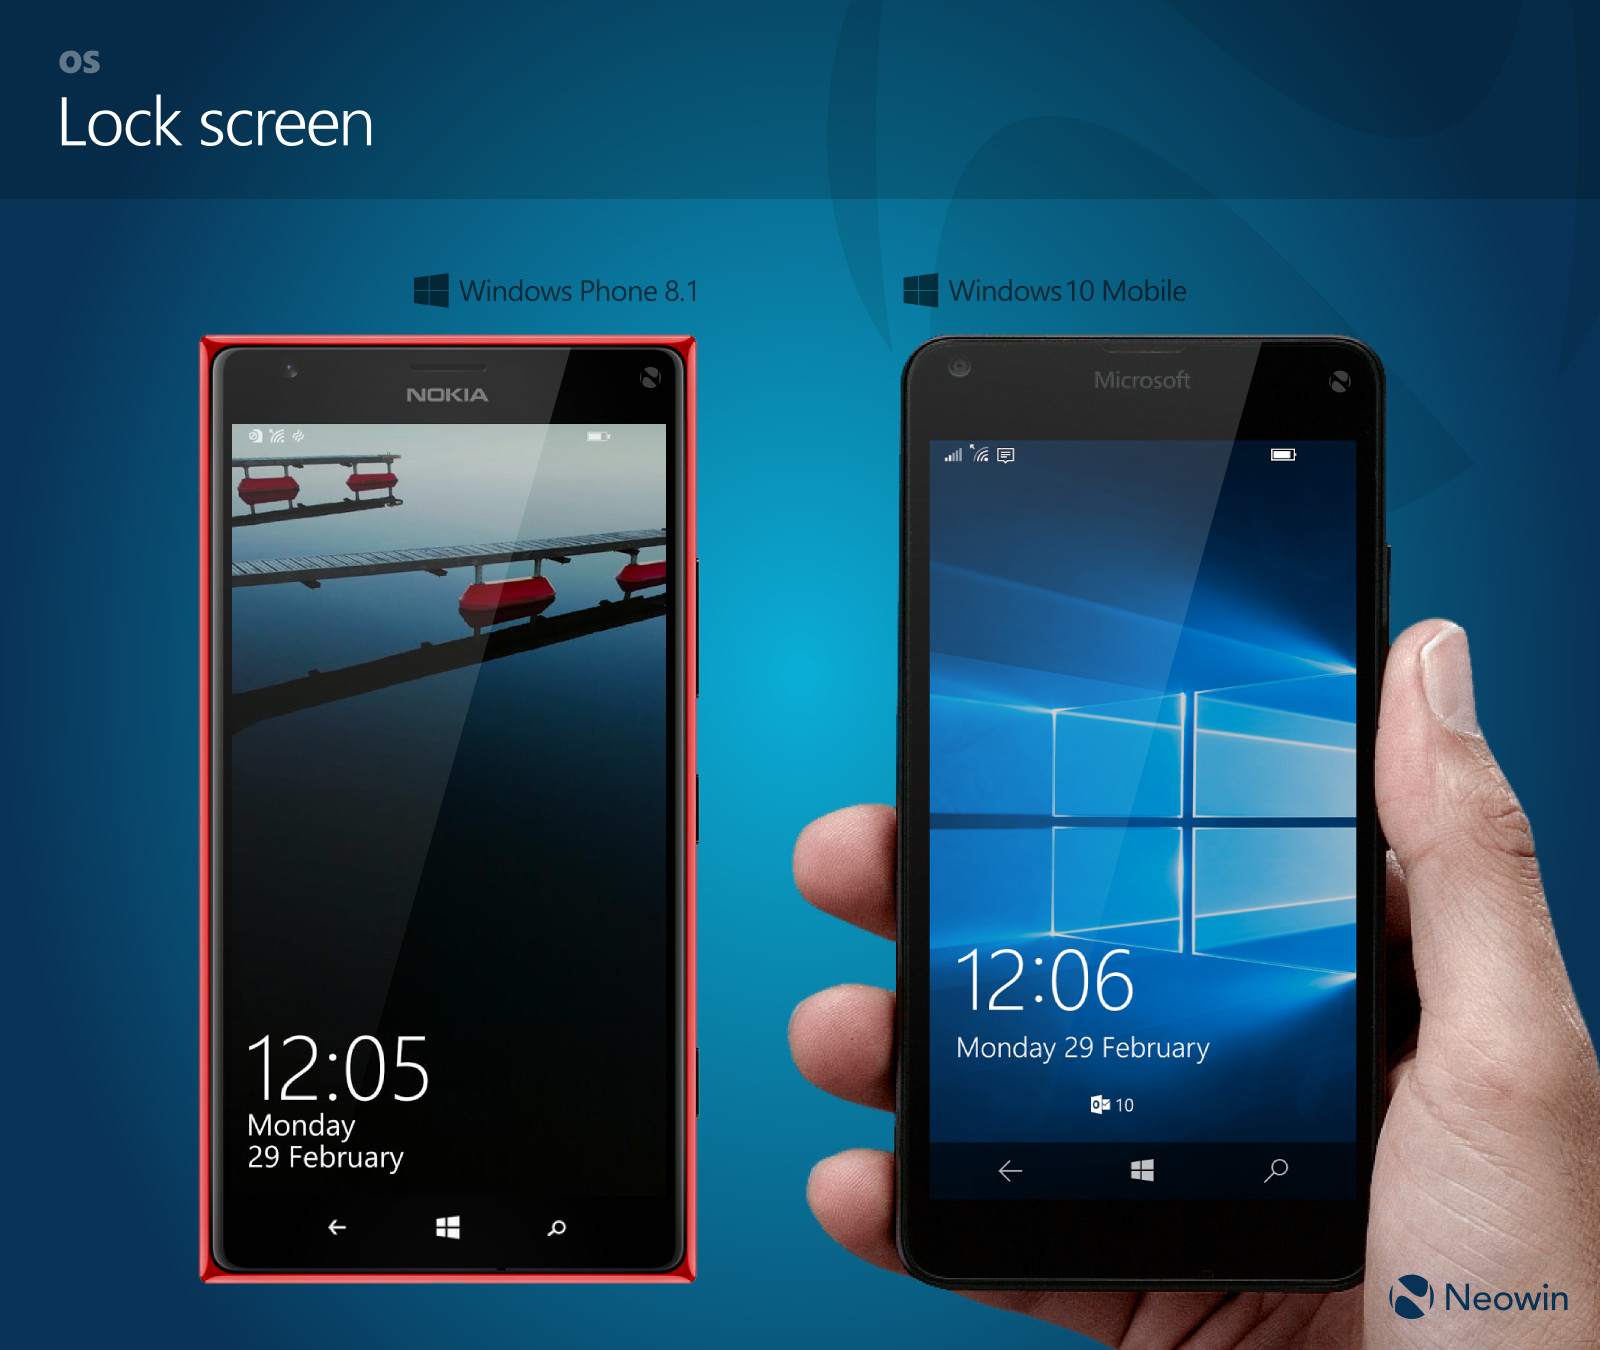 In pictures: Comparing Windows Phone 8.1 and Windows 10 ...